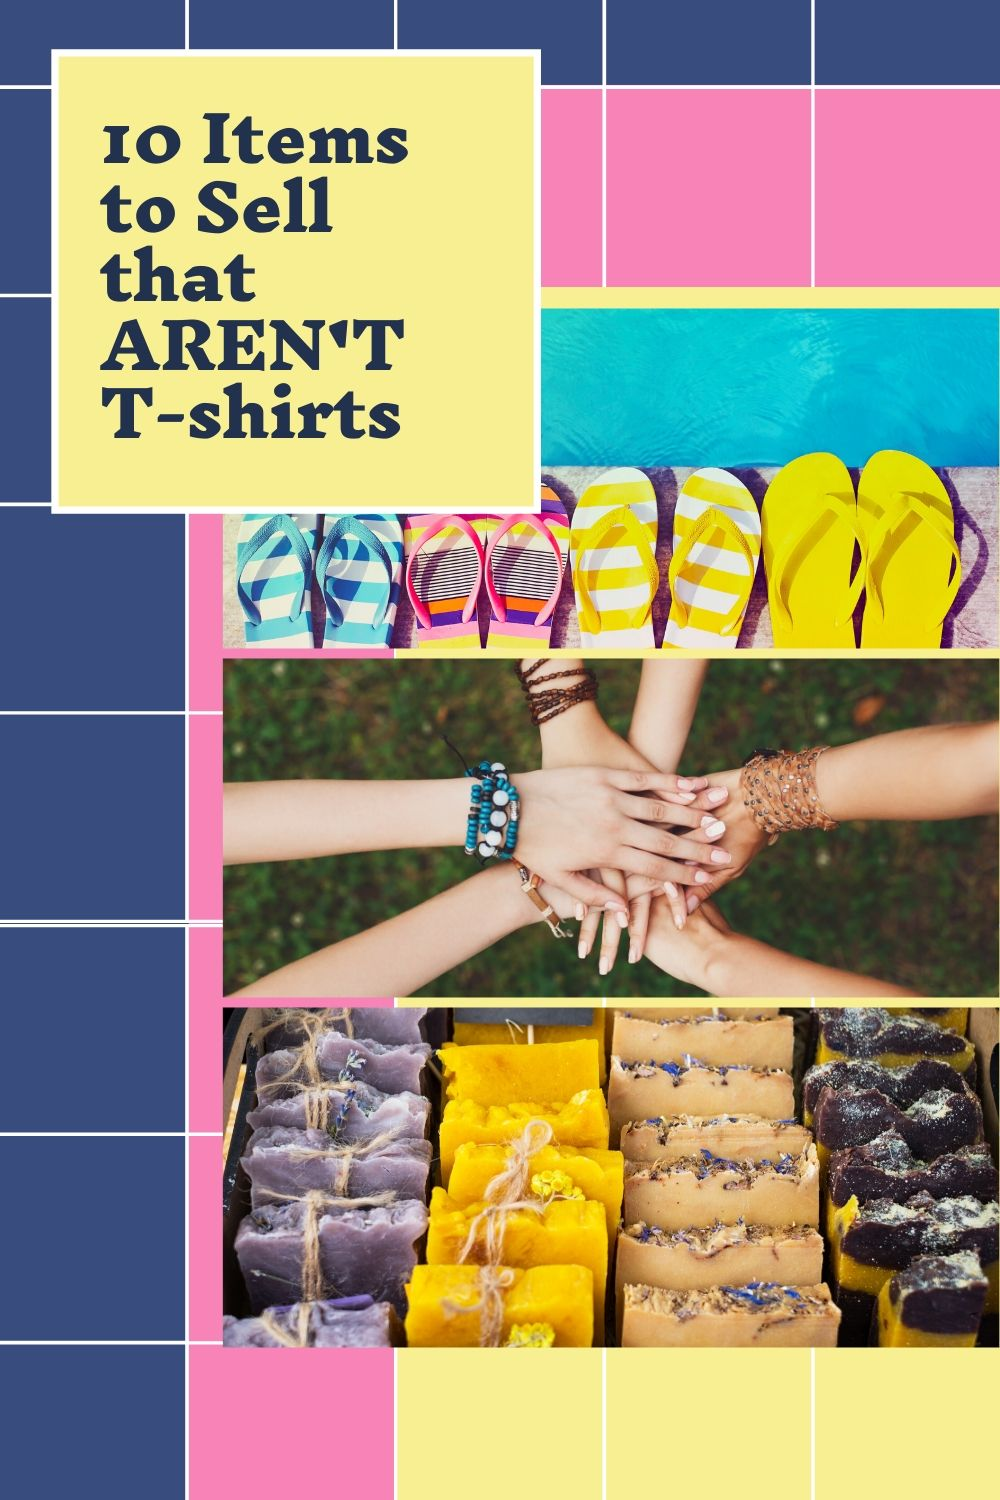 raise money and sell items that are not t-shirts